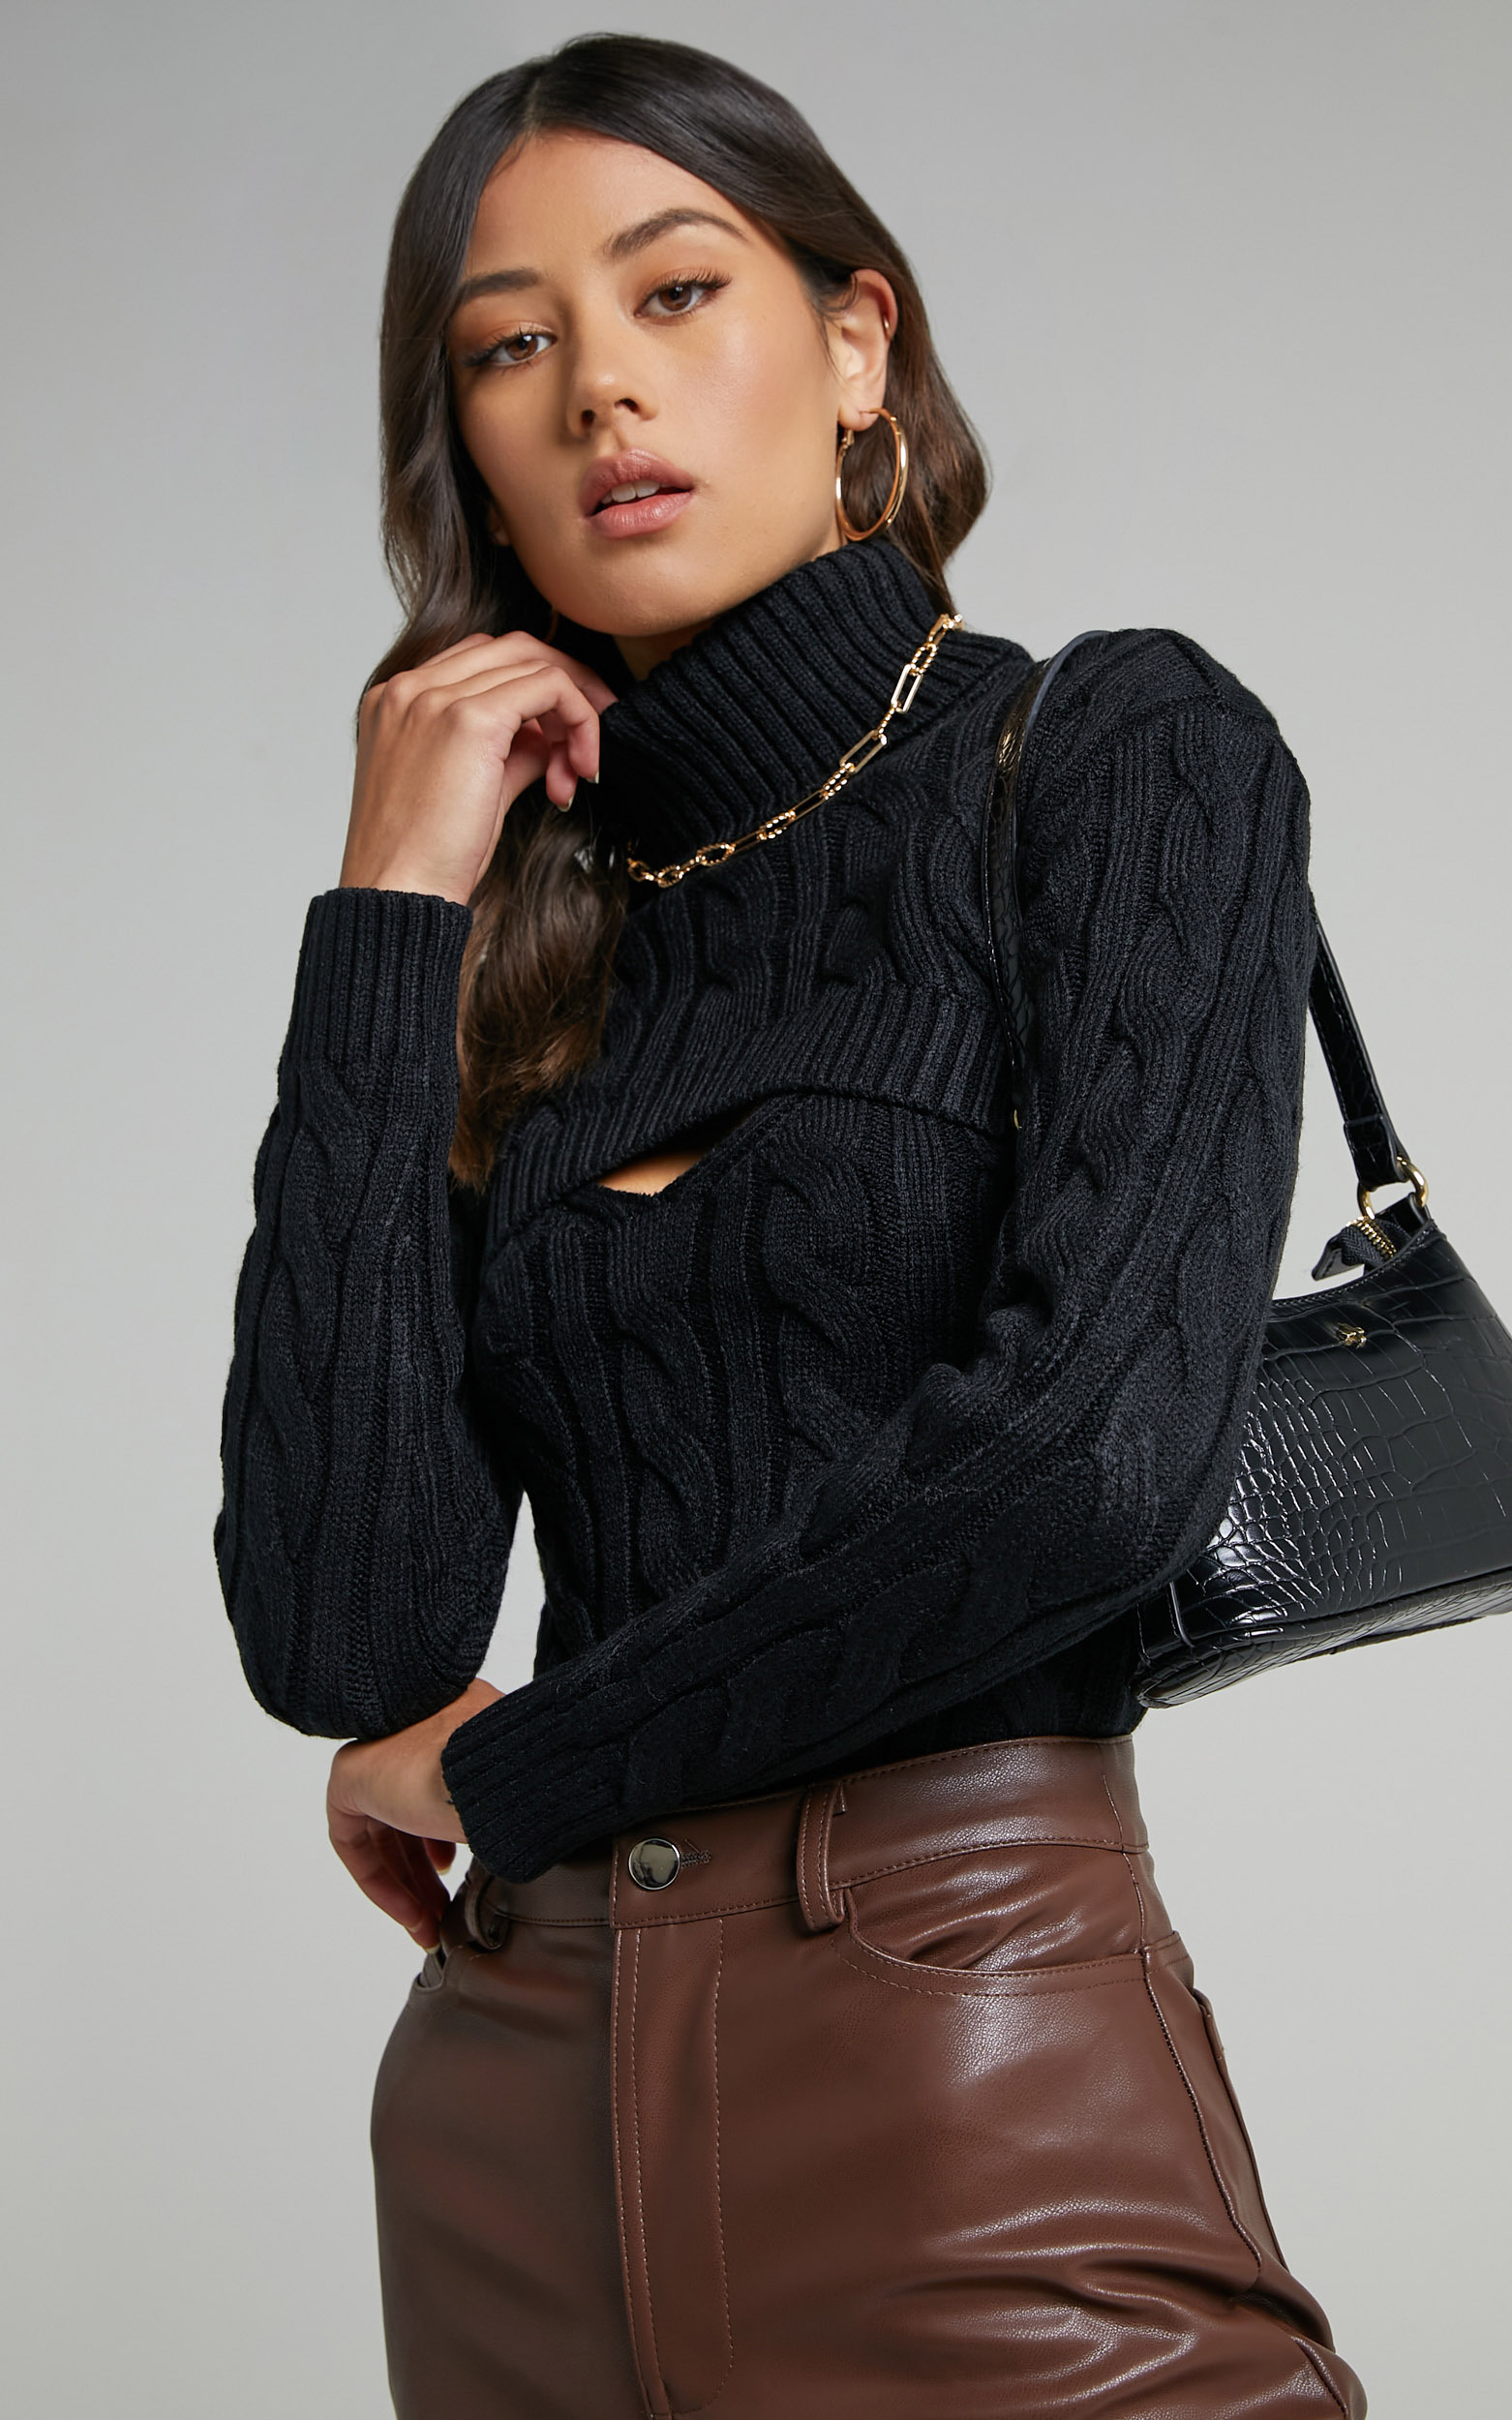 Leillia Cutout Cable Knit Top in Black - 06, BLK1, hi-res image number null